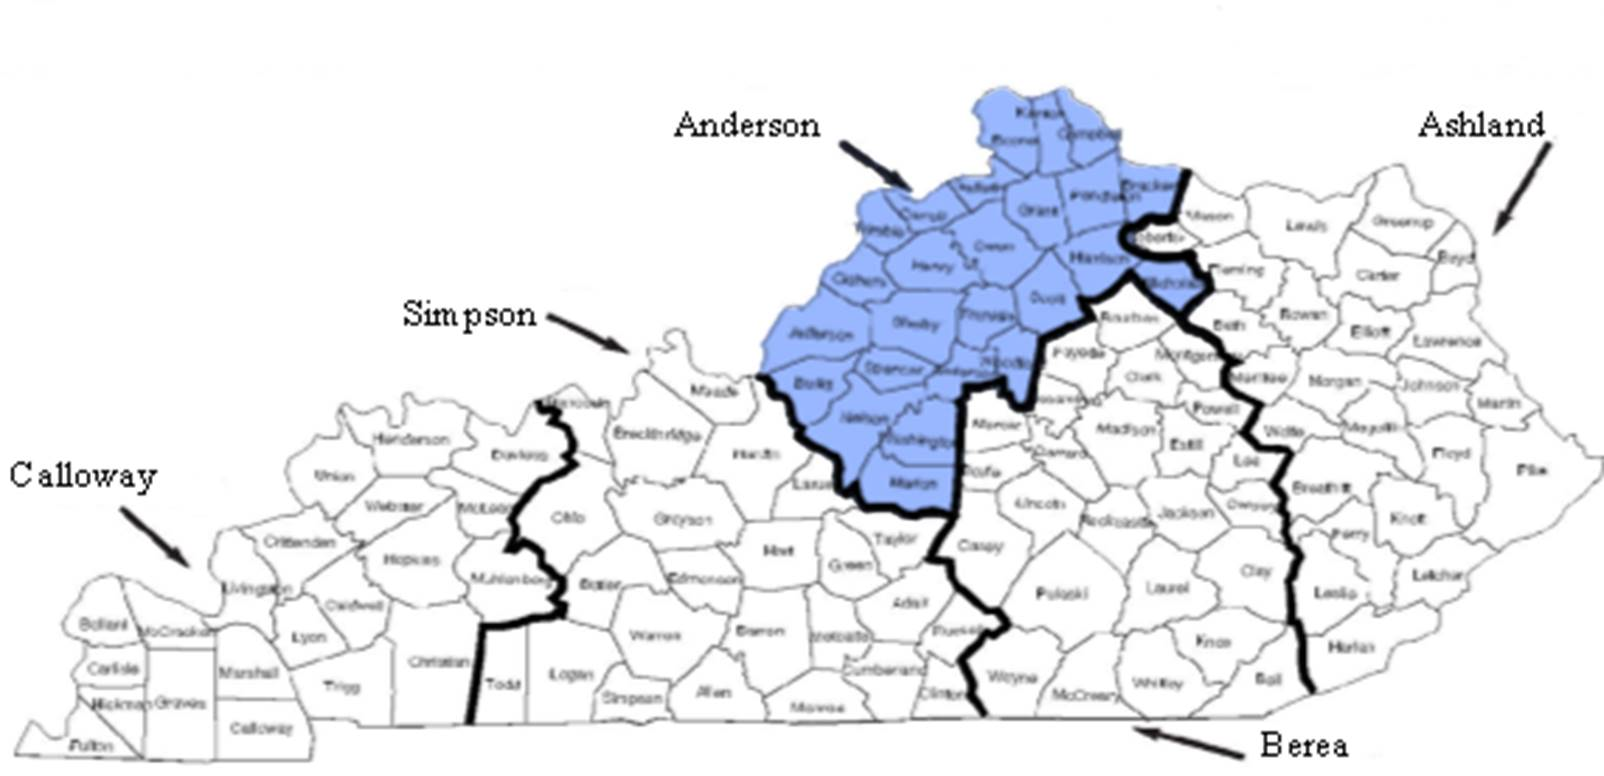 Map of the 5 RTC Regions with Anderson's Region Highlighted in Blue